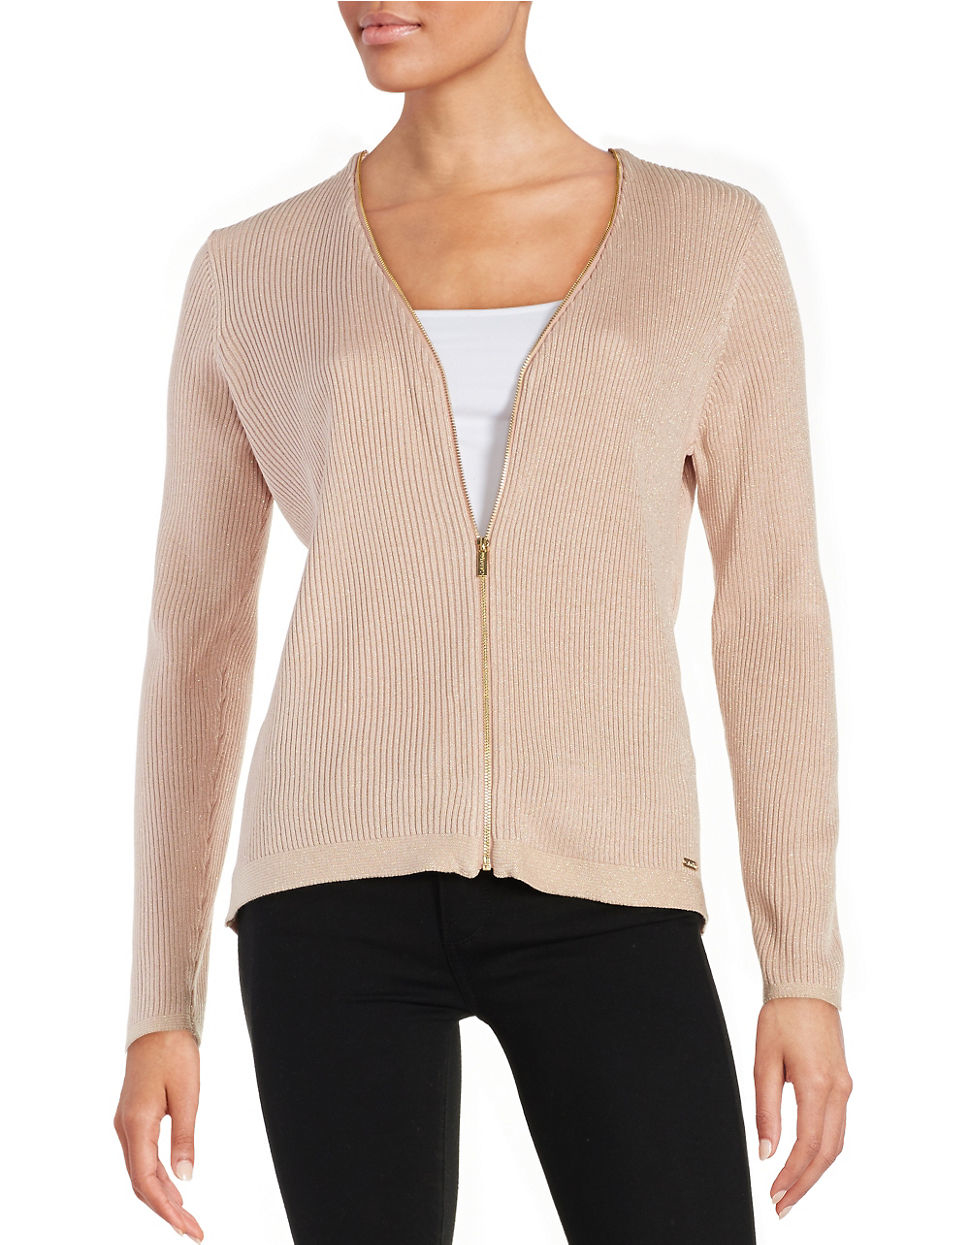 Calvin klein Front Zipper Ribbed Cardigan in Pink | Lyst